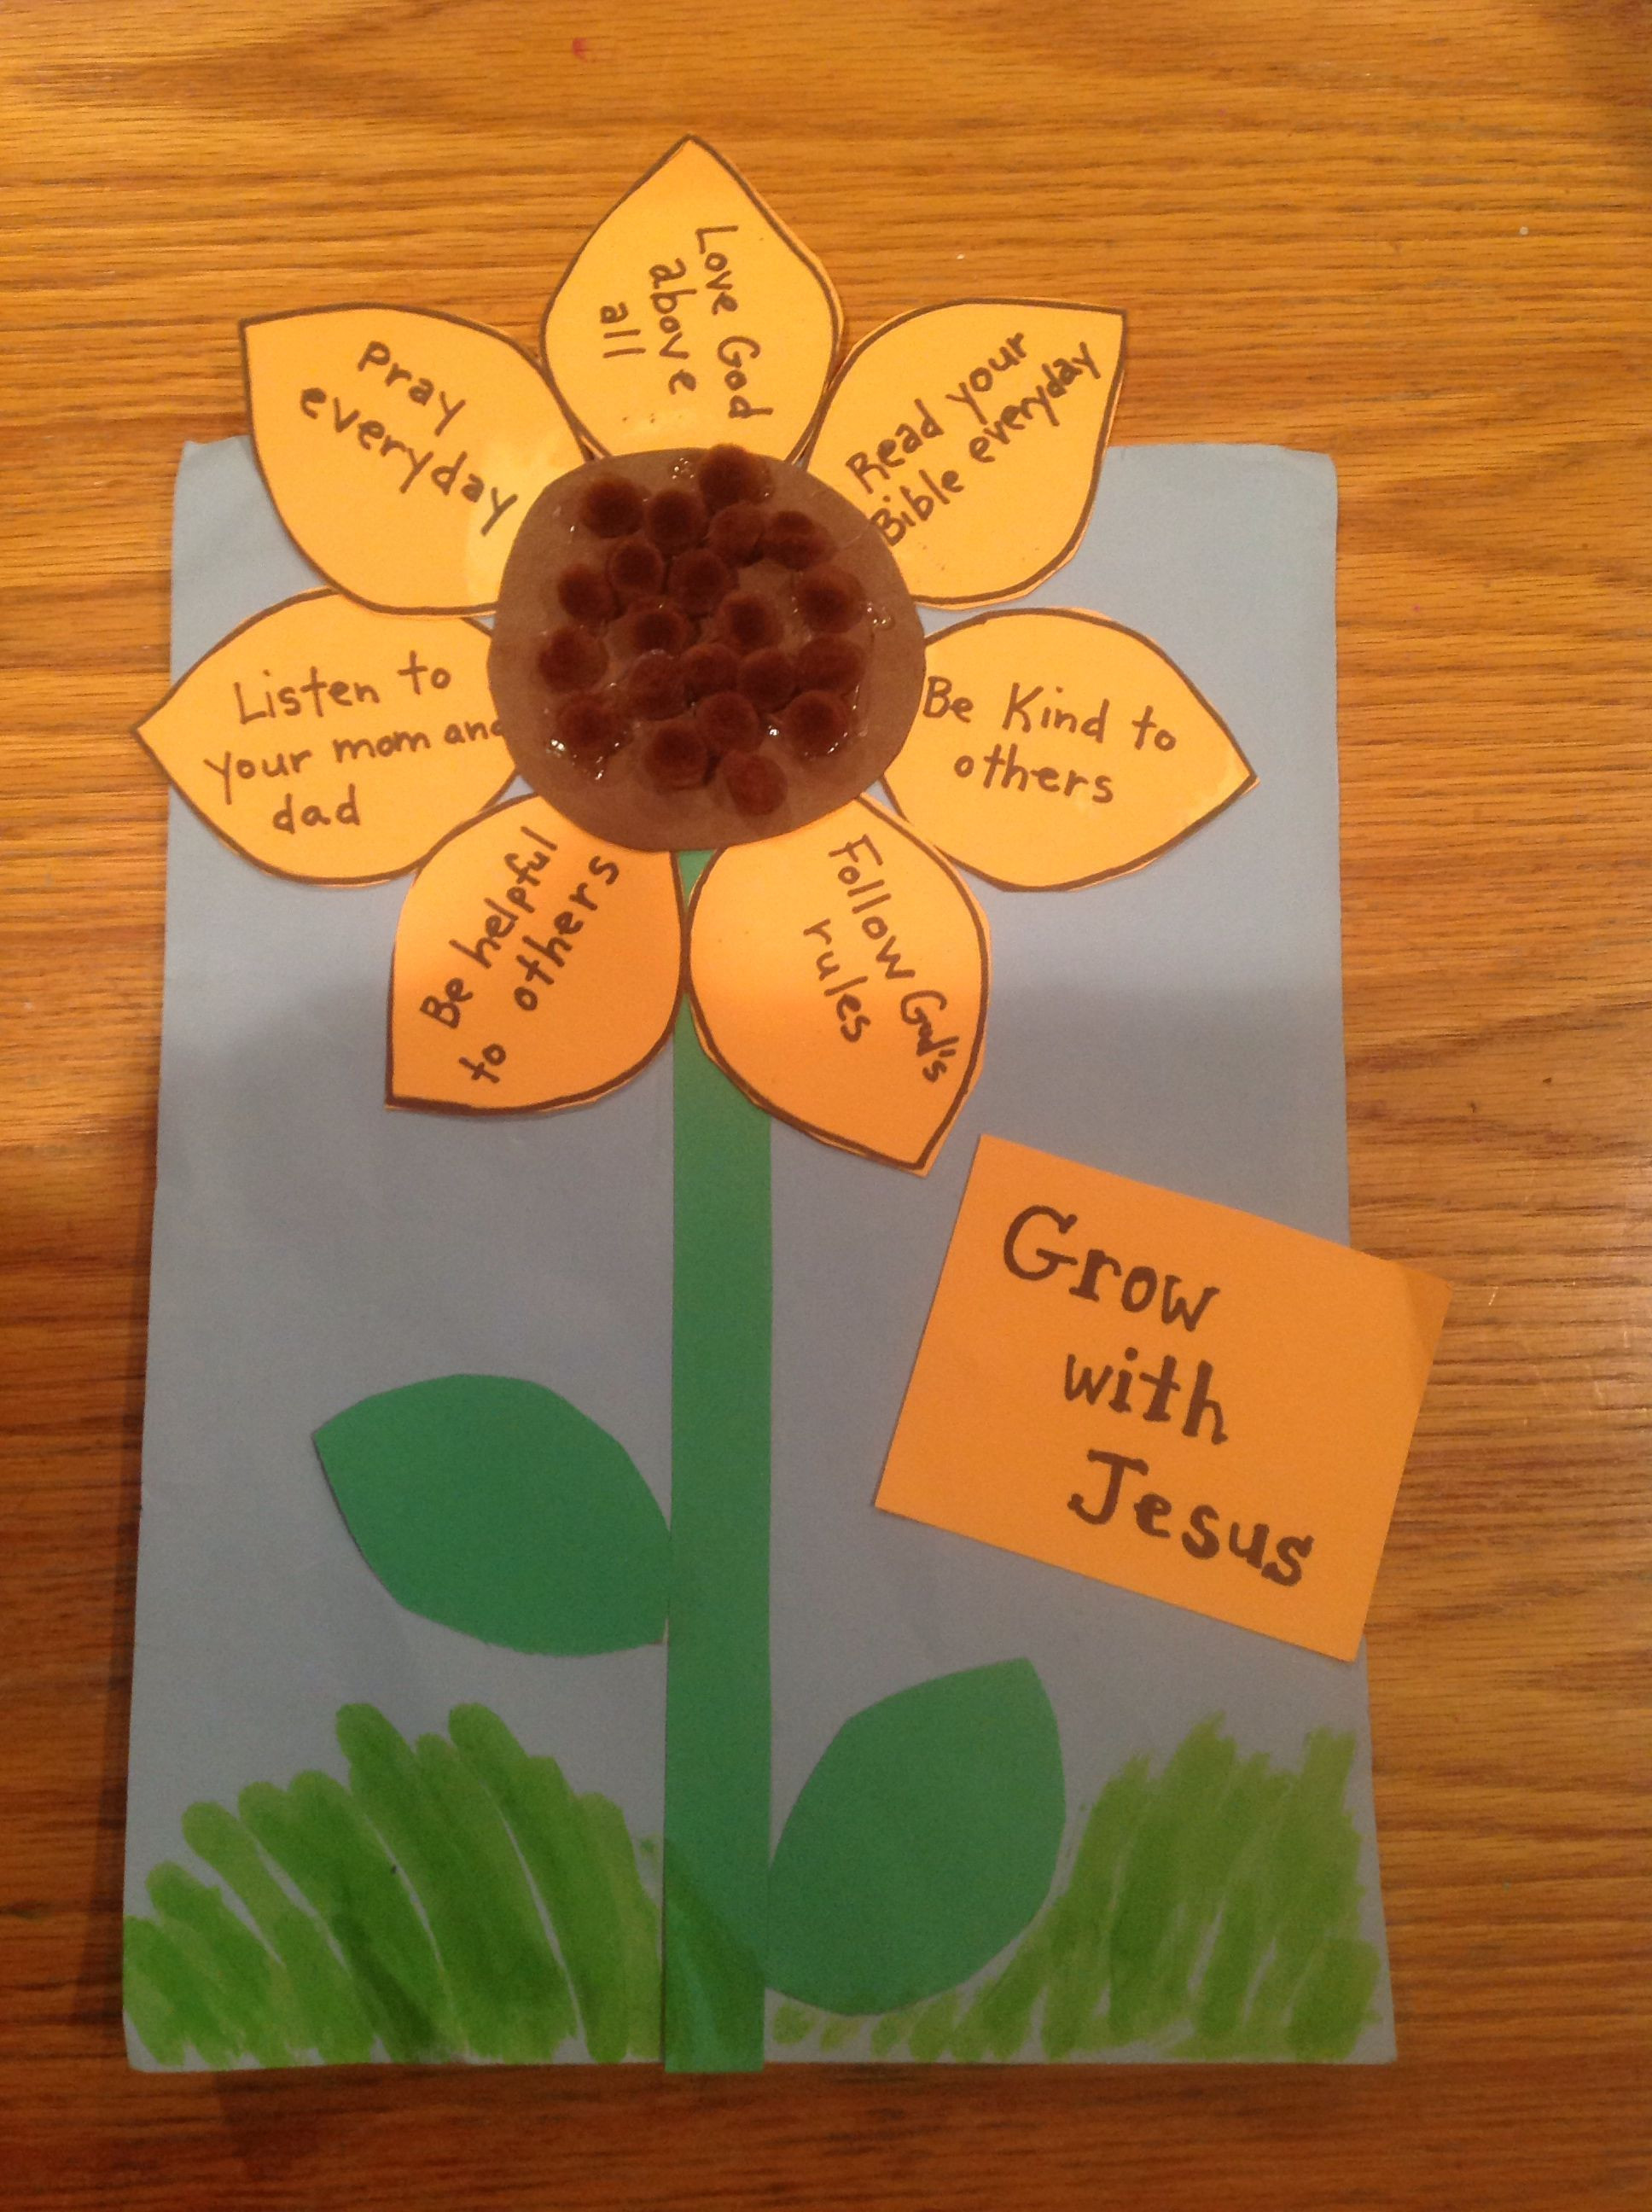 Best ideas about Bible Crafts For Preschoolers . Save or Pin Grow with Jesus Bible Craft by Let Now.